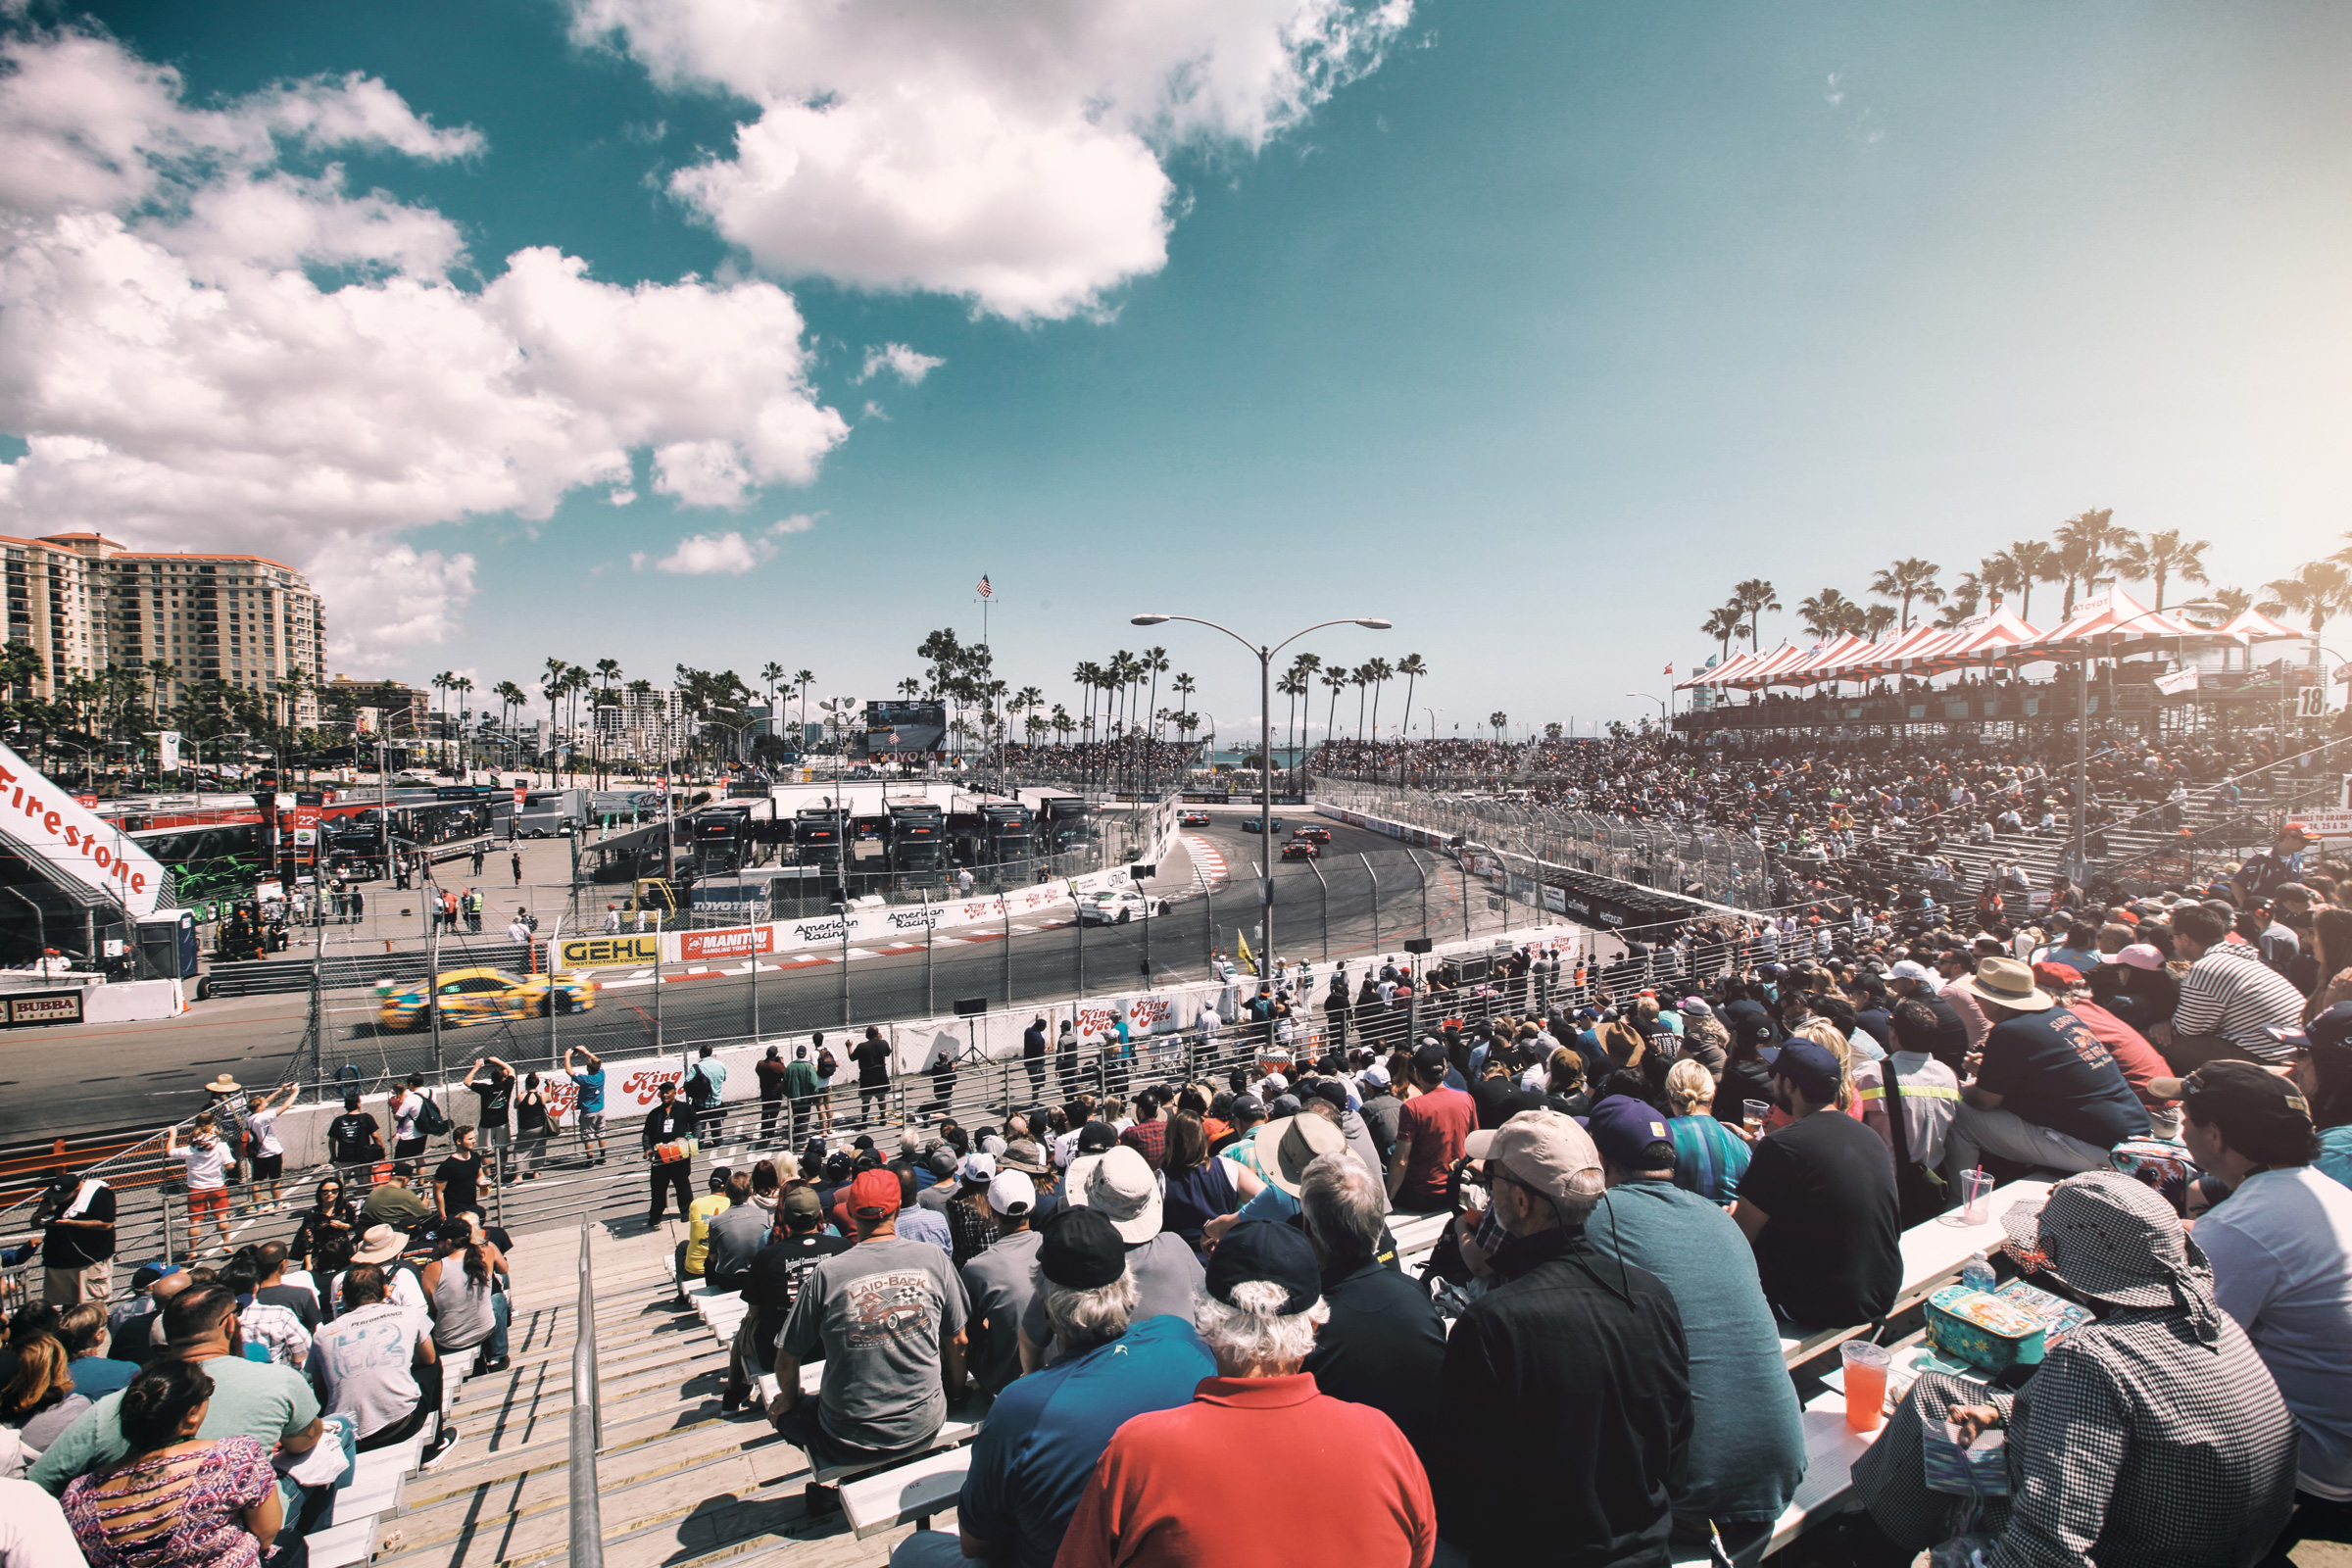 Zuschauer und Rennstrecke in Long Beach, Los Angeles. Spectators and racetrack in Long Beach, Los Angeles.